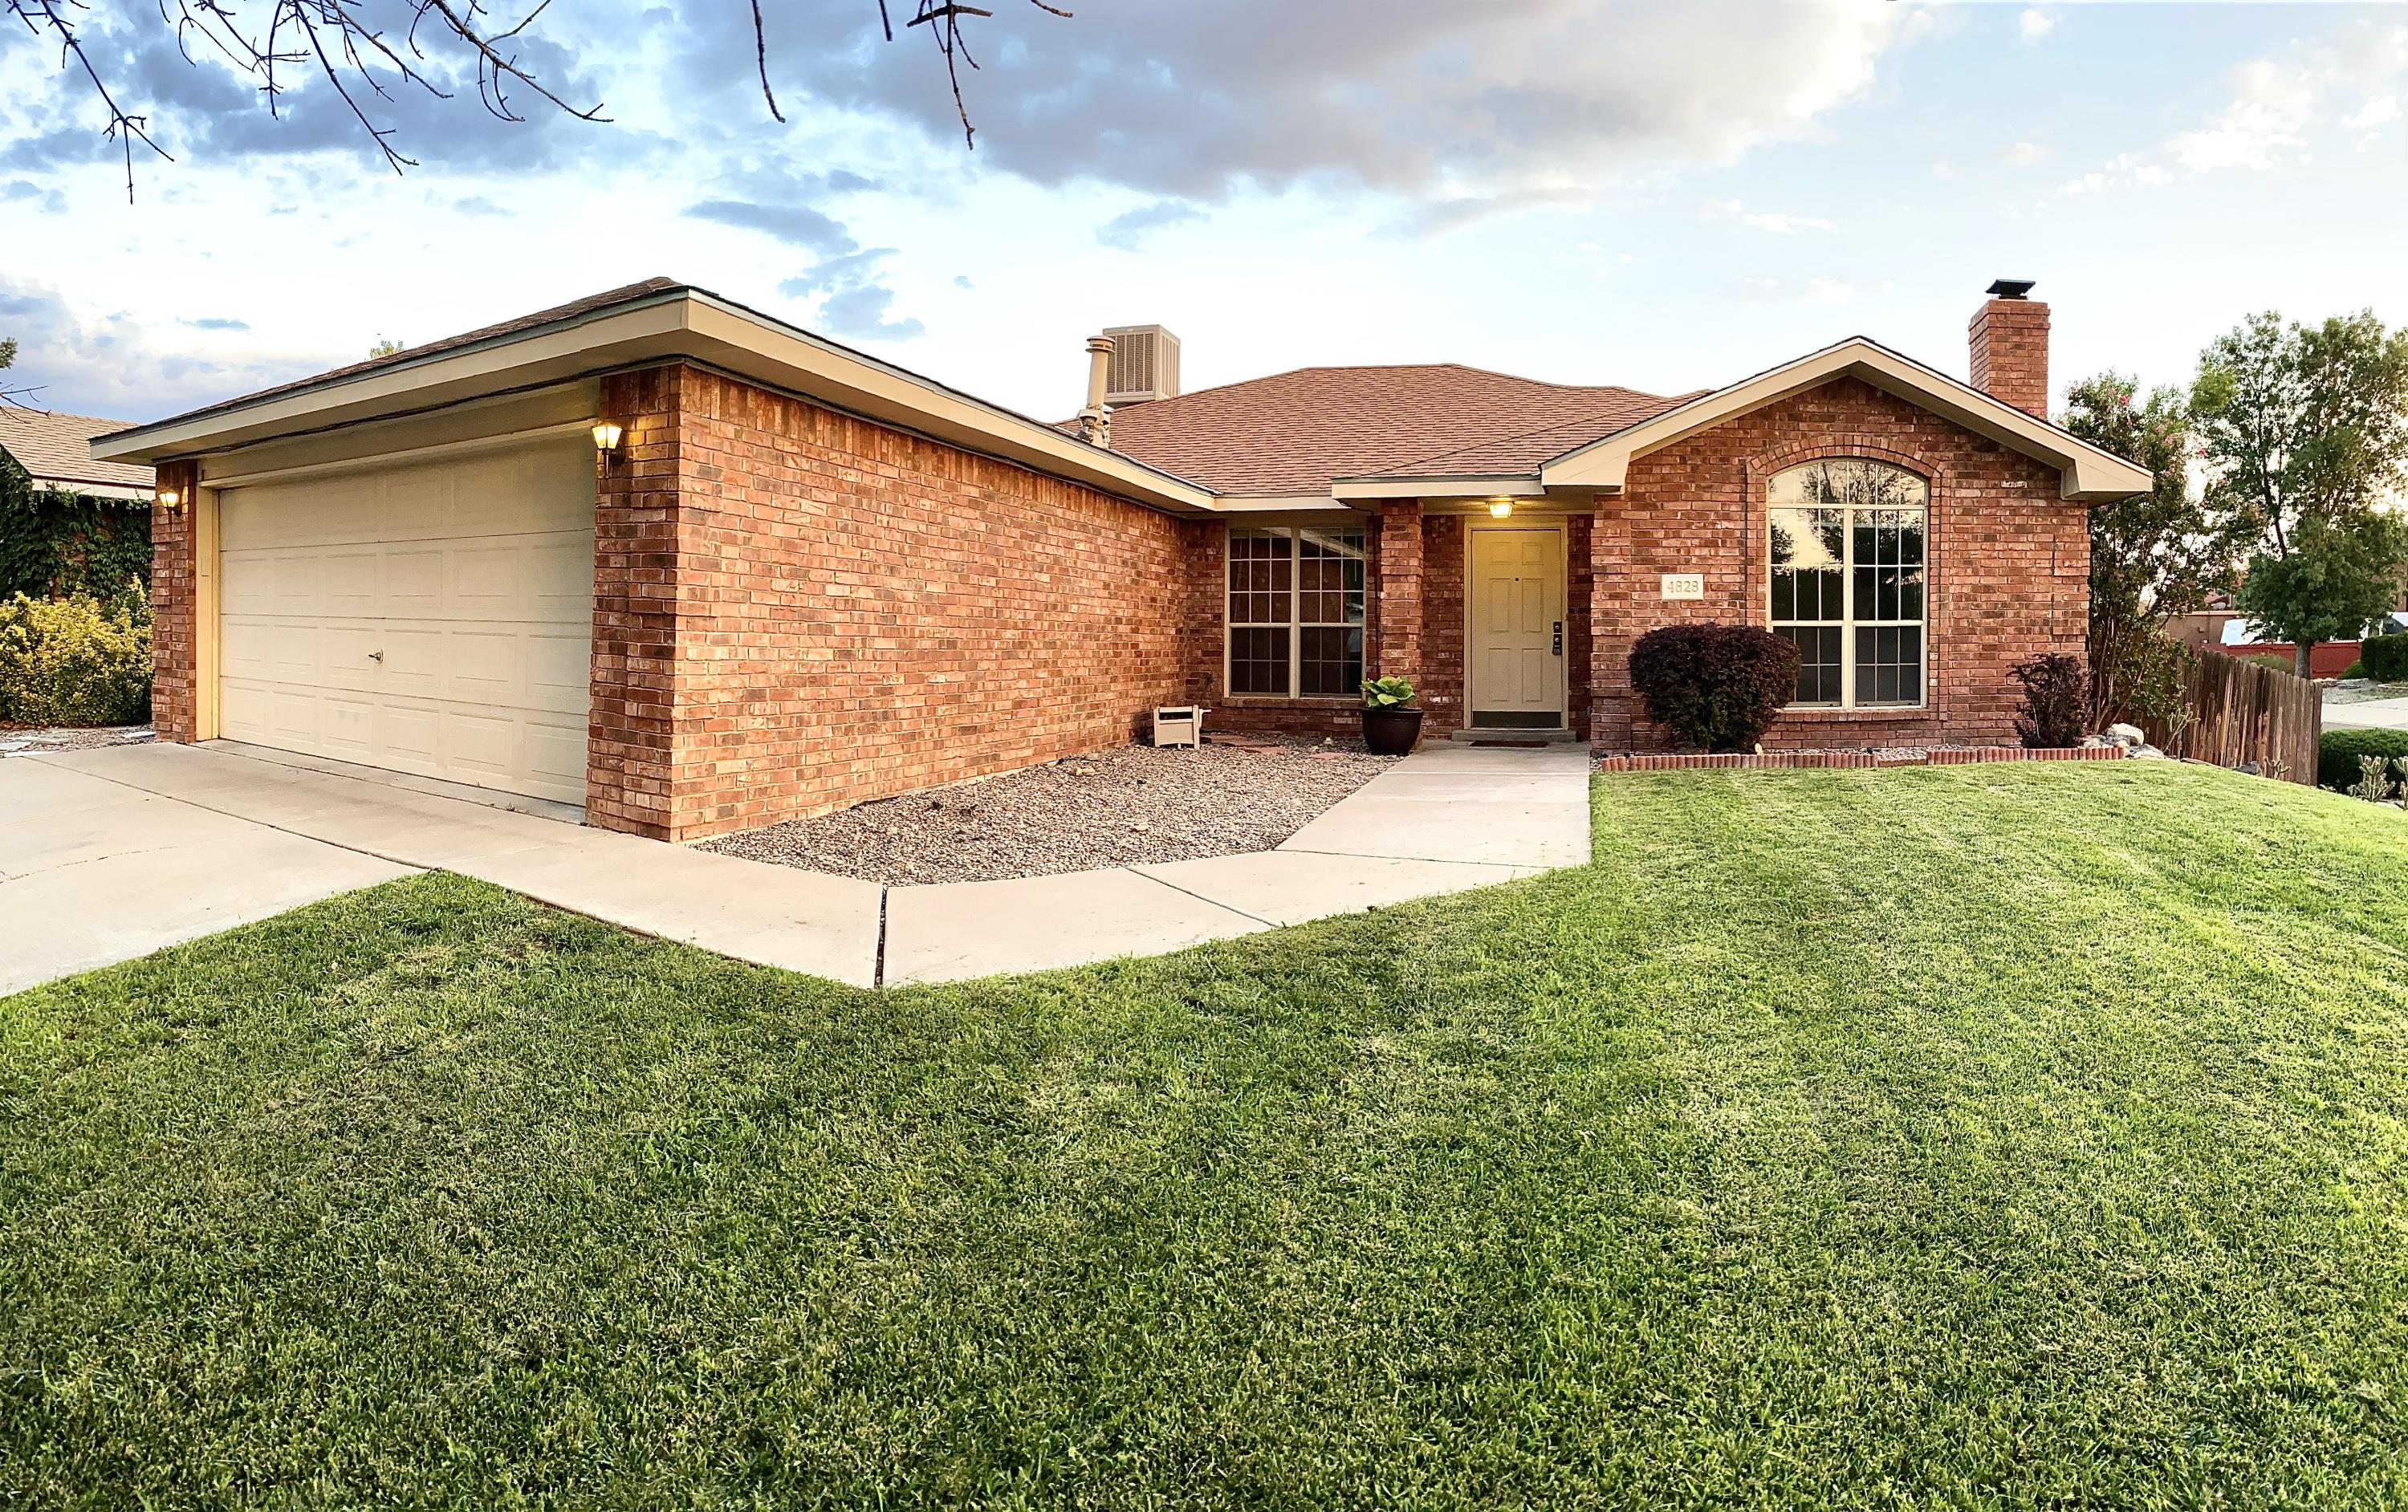 Beautiful Taylor Ranch home in Prairie Ridge. Pride of ownership and attention detail abound in this Opal Jenkins home on a large corner lot. Updated Kitchen and lighting with a designer touch. Large island and breakfast nook that opens to the wonderfully landscaped back yard and patio. This home has cathedral ceilings, arched panel windows, and a spacious great room with wood burning fireplace. Finally, the mature landscape with apple tree, roses, grass and garden feel provides an amazing backyard get away!